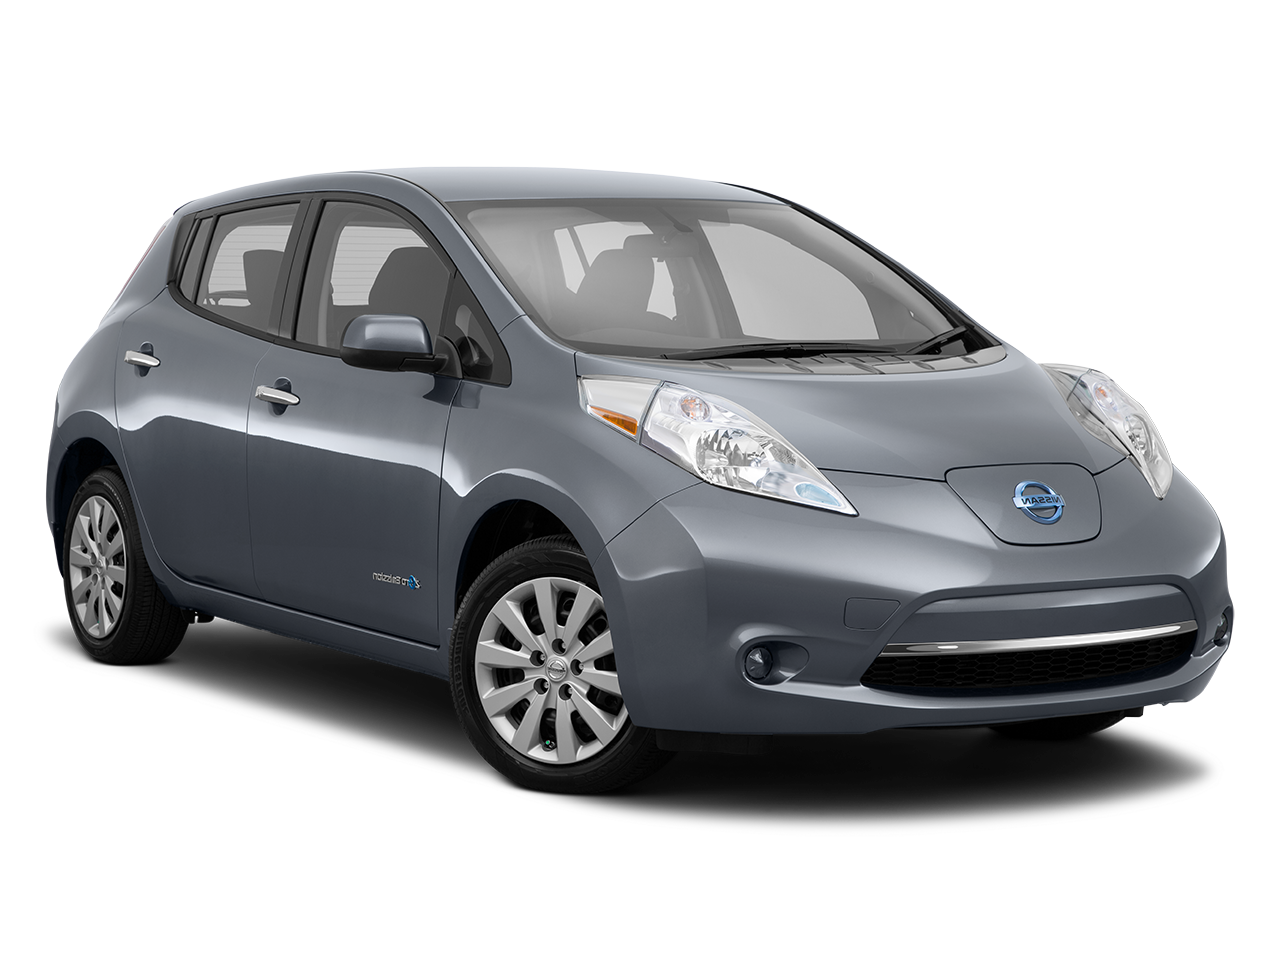 New 2016 Nissan Leaf Lease Offers and Best Prices | Quirk Nissan